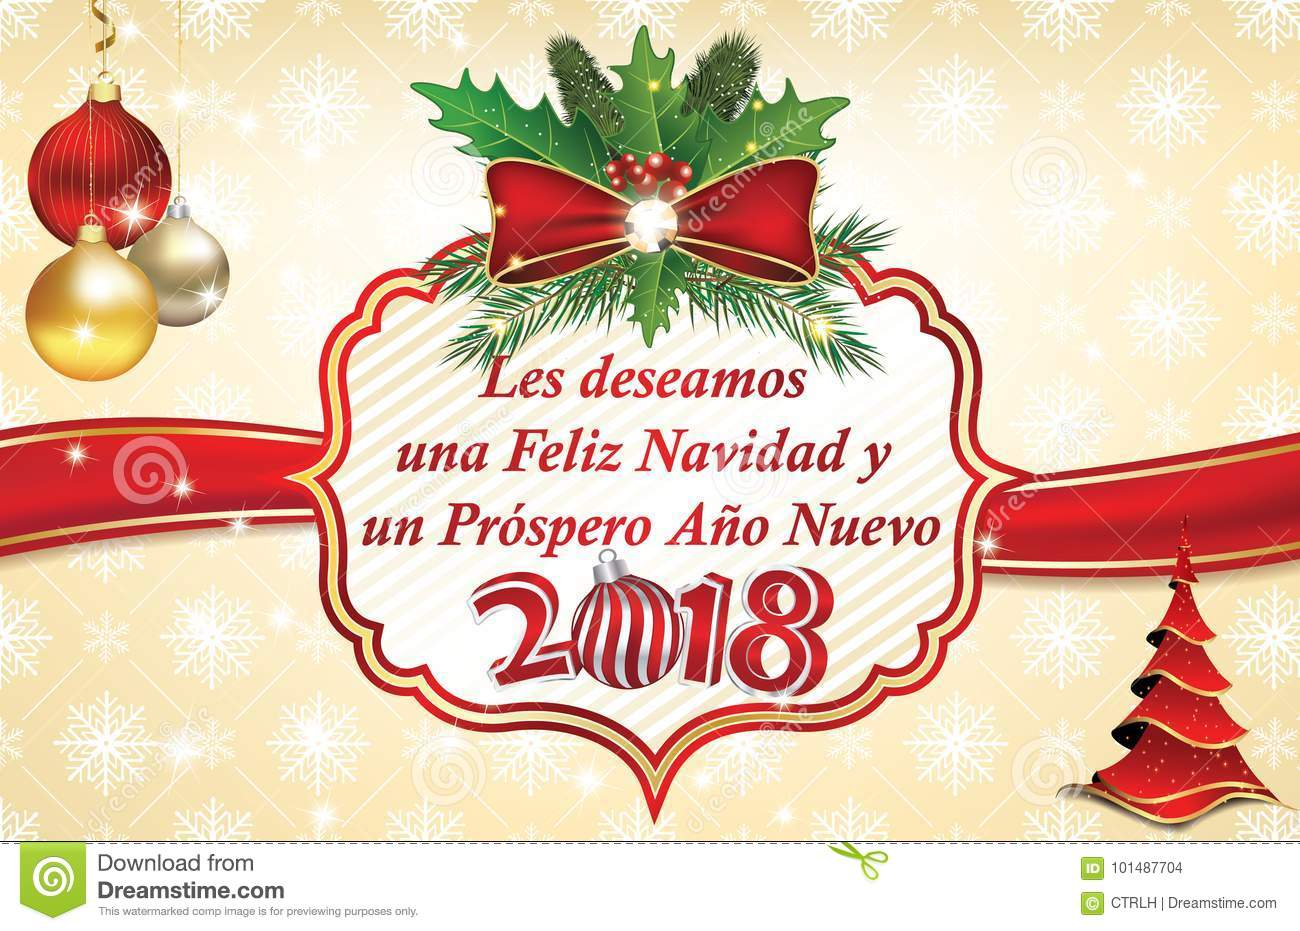 winter holidays christmas and new year greeting card in spanish language